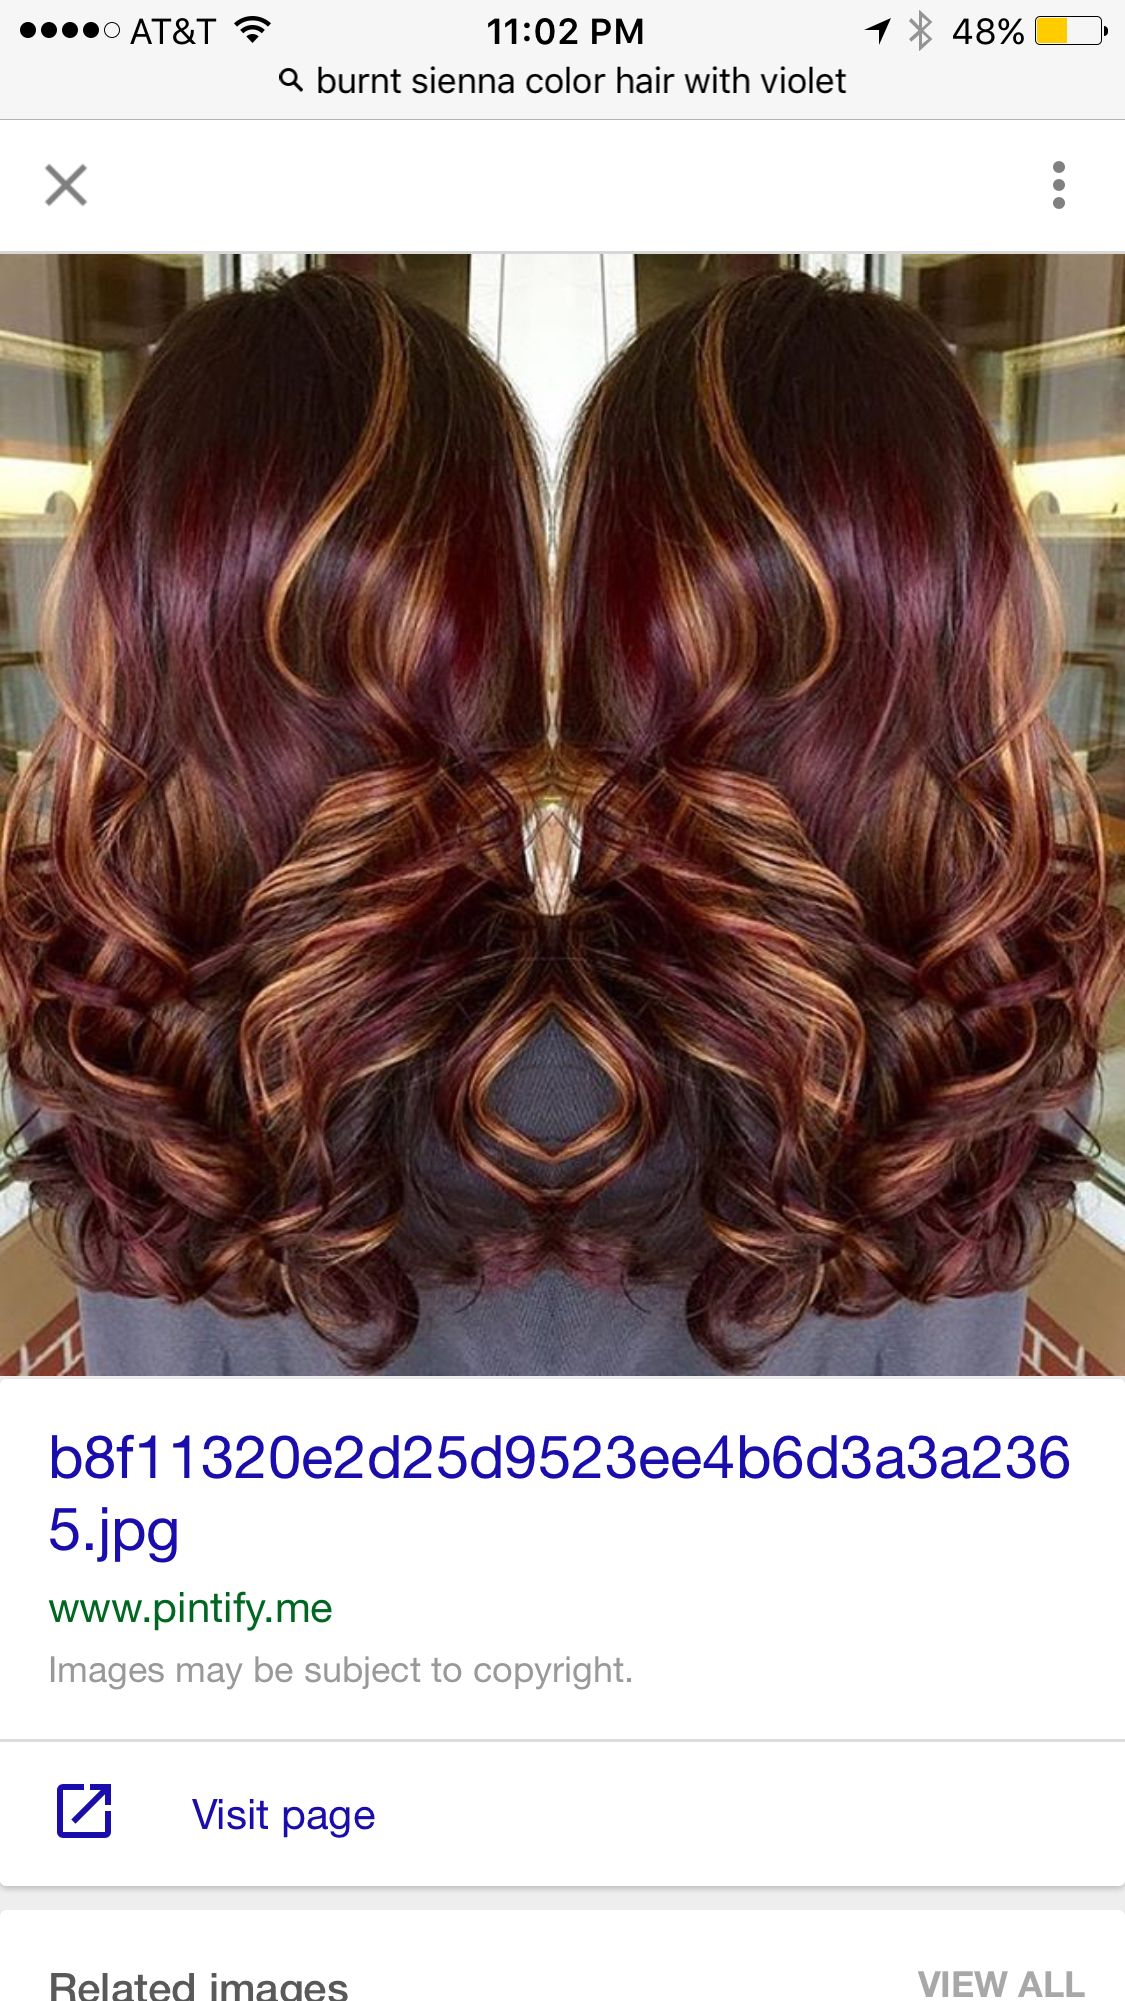 Violet Burnt Sienna Hair Ideas Pinterest Violets Hair